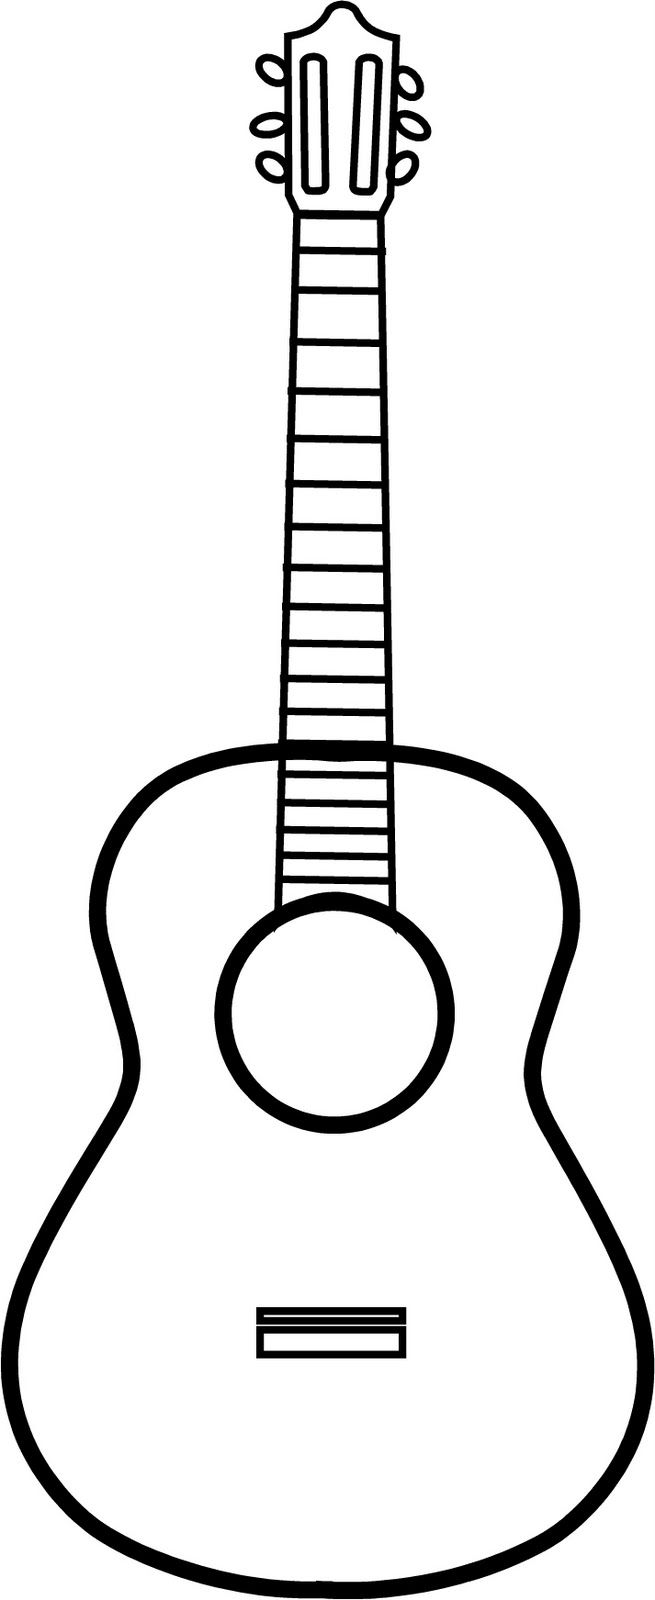 guitar outline vinyl on the go guitar imprimibles blanco negro rh pinterest com acoustic guitar black and white clipart acoustic guitar images clipart